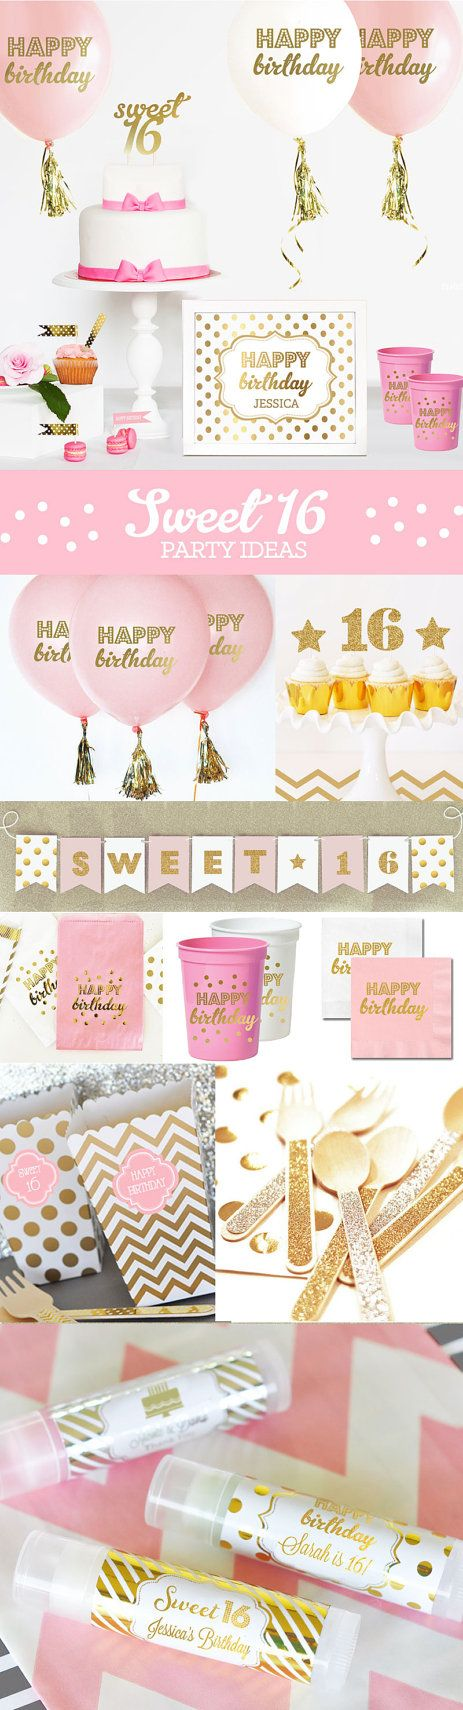 Sweet 16 Ideas for a Sweet 16 Cake Topper, Sign, Banner Balloons, Napkins Favors…